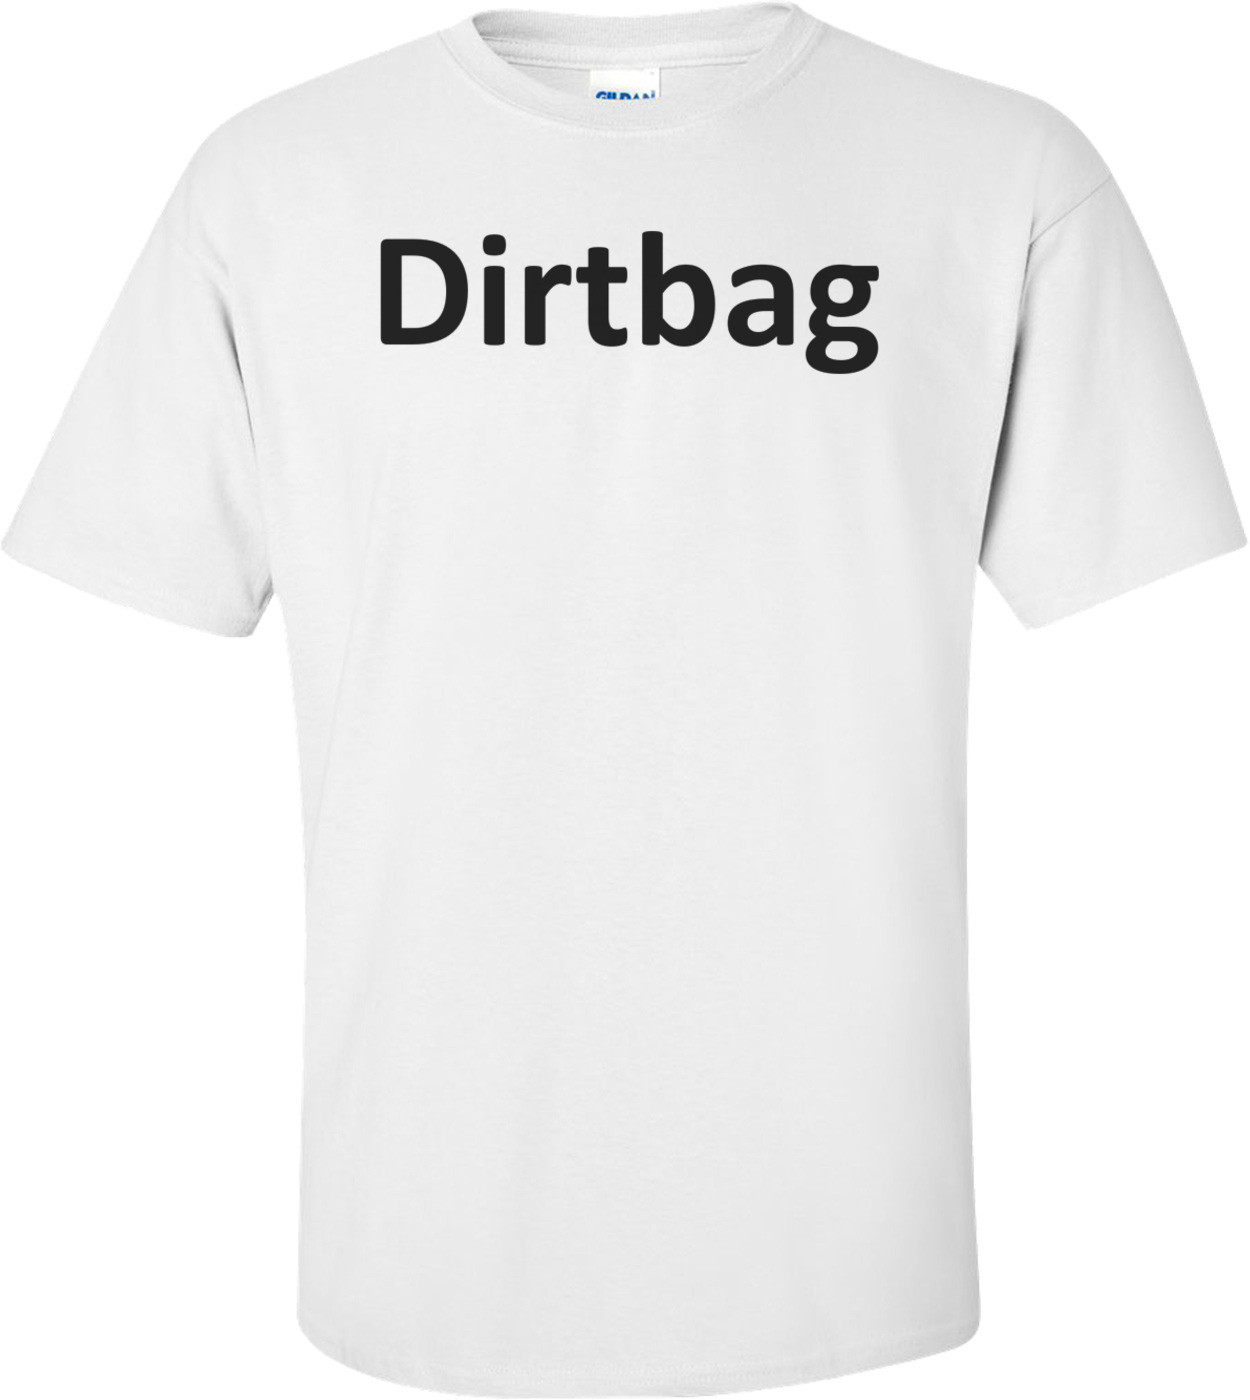 Dirtbag T-Shirt